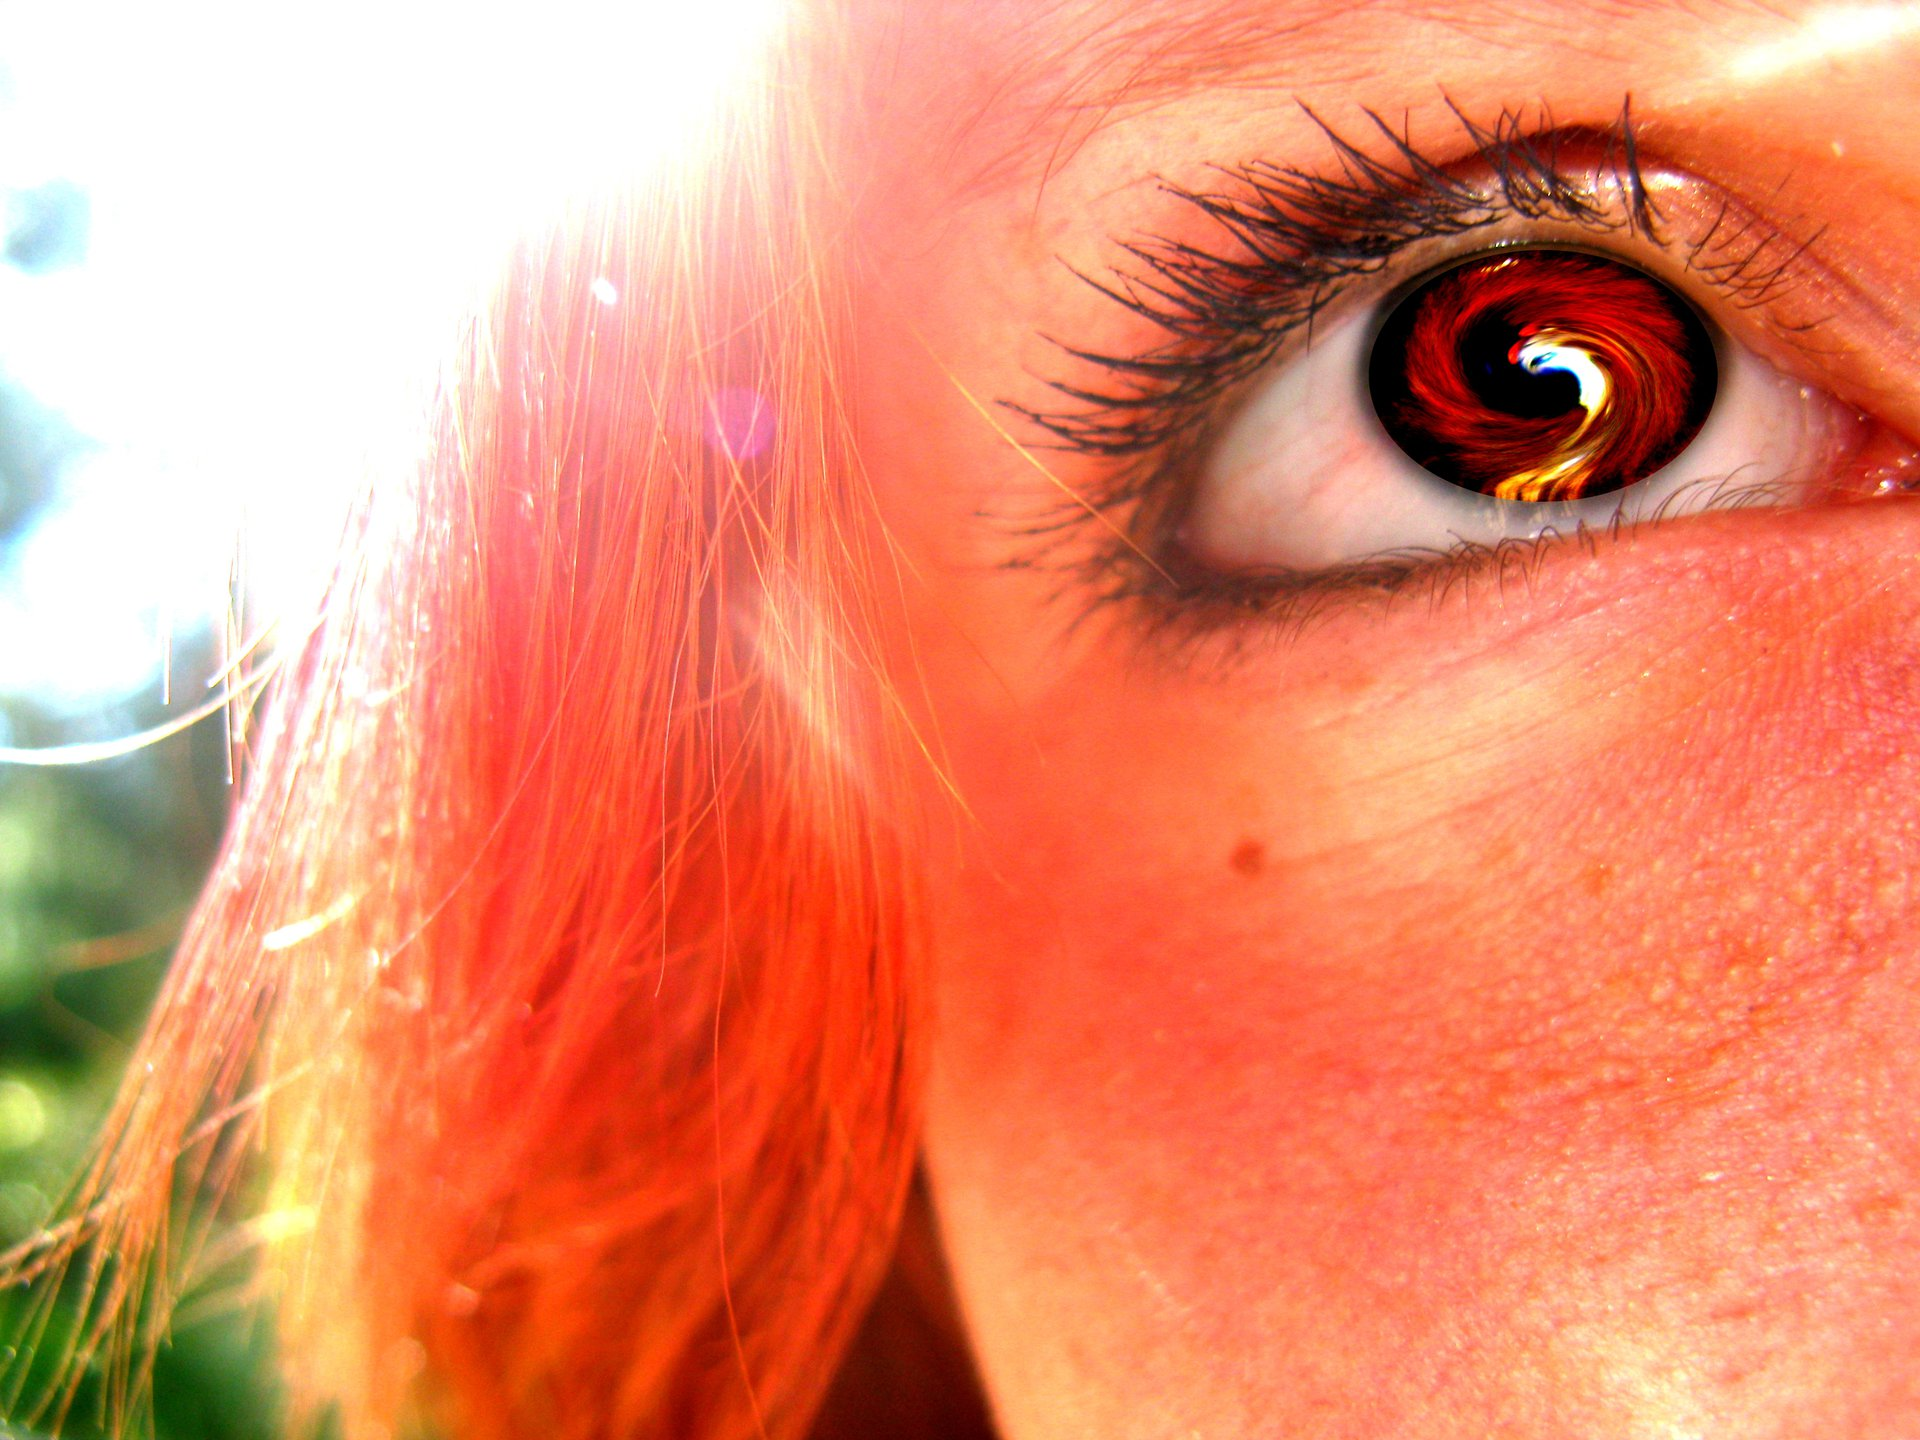 Another eye edit.